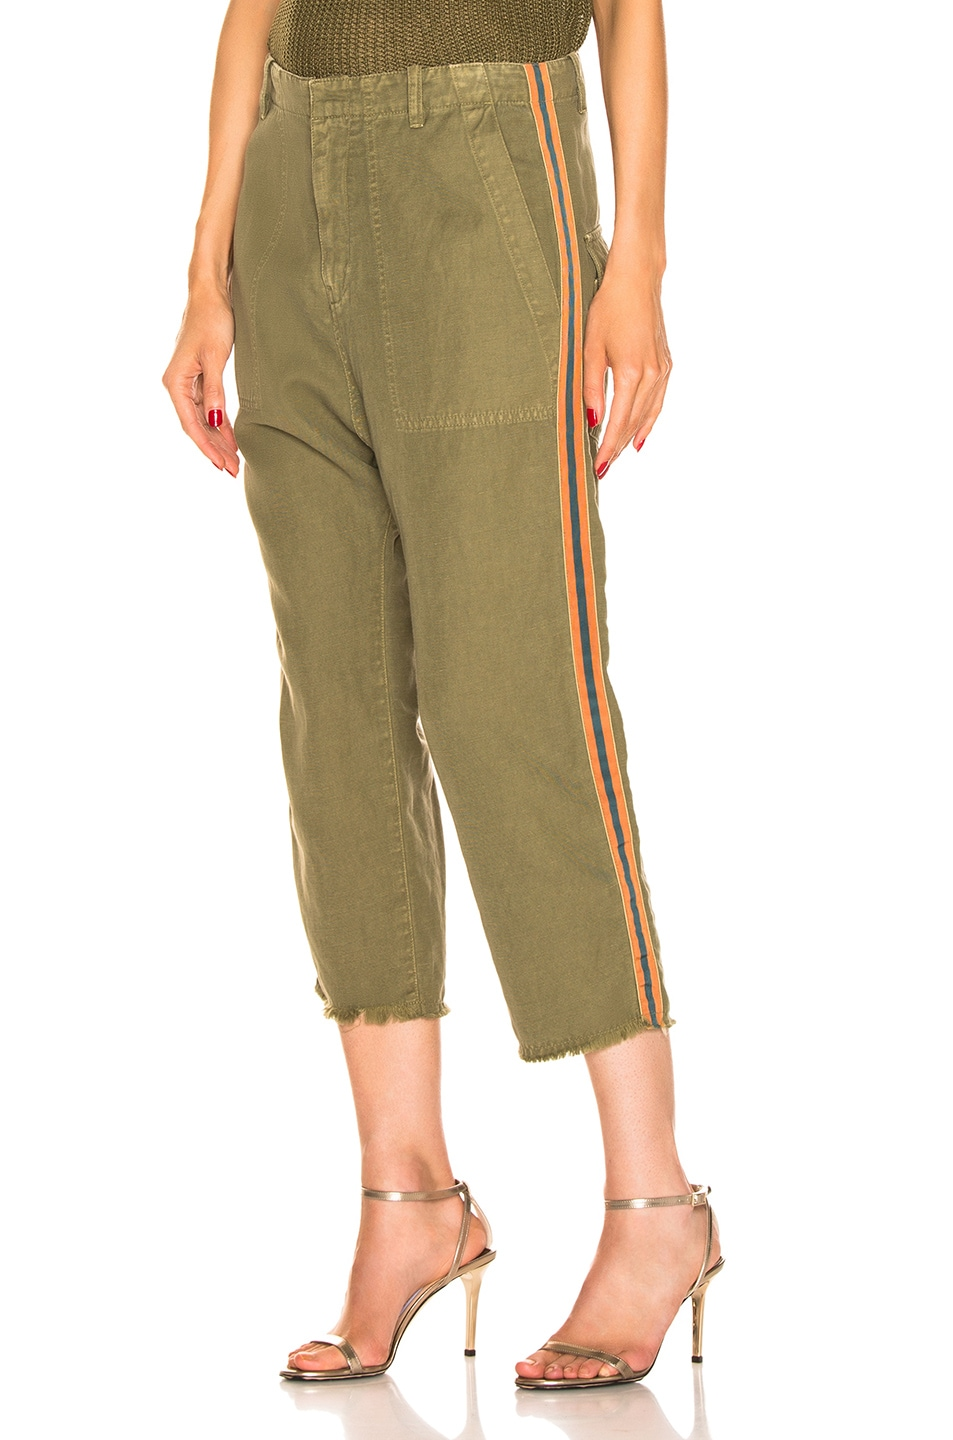 Image 1 of NILI LOTAN Luna Pant with Tape in Uniform Green, Orange, Navy Blue